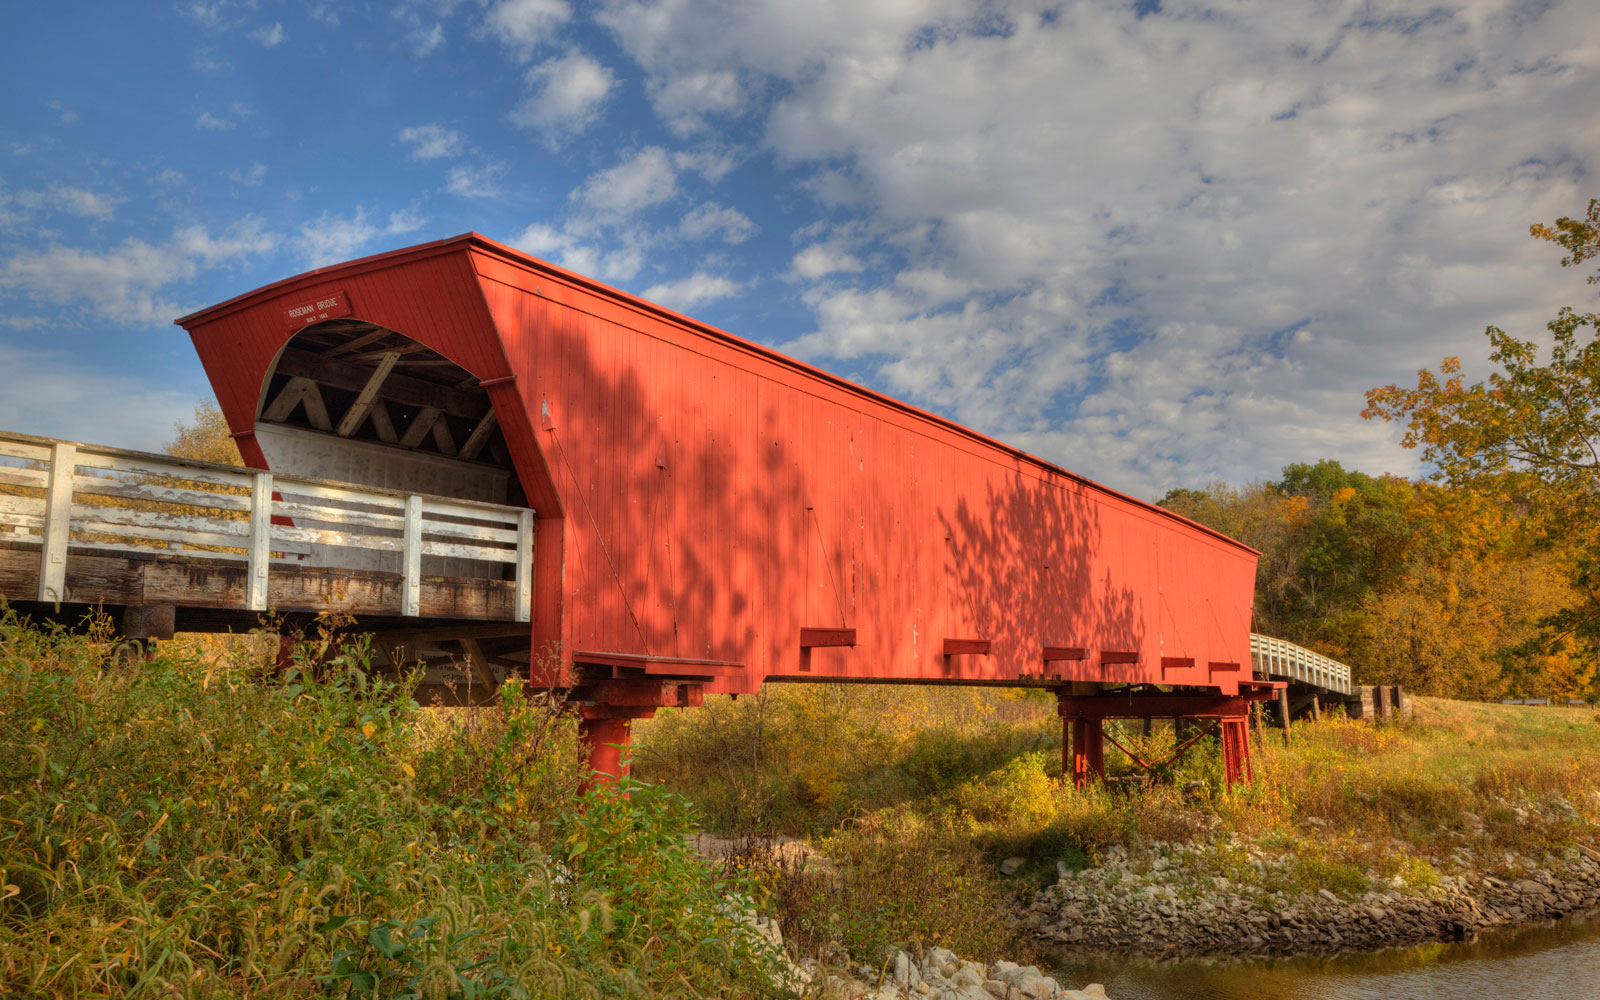 Roseman Covered Bridge, Winterset, IA